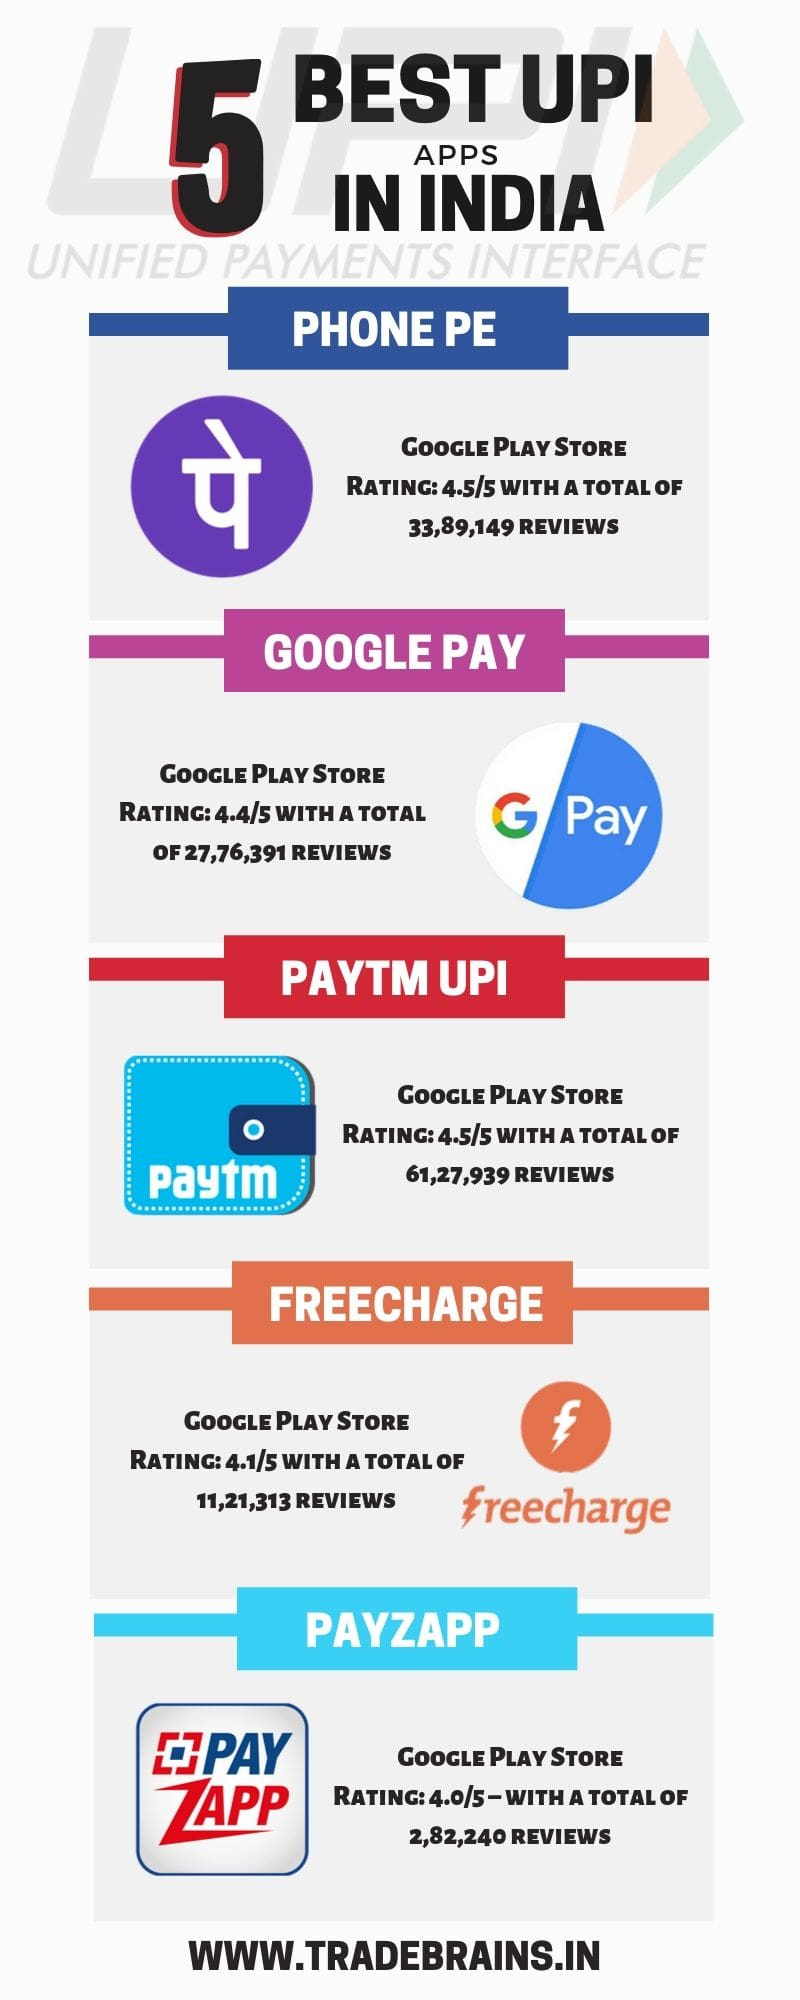 5 best upi apps in India